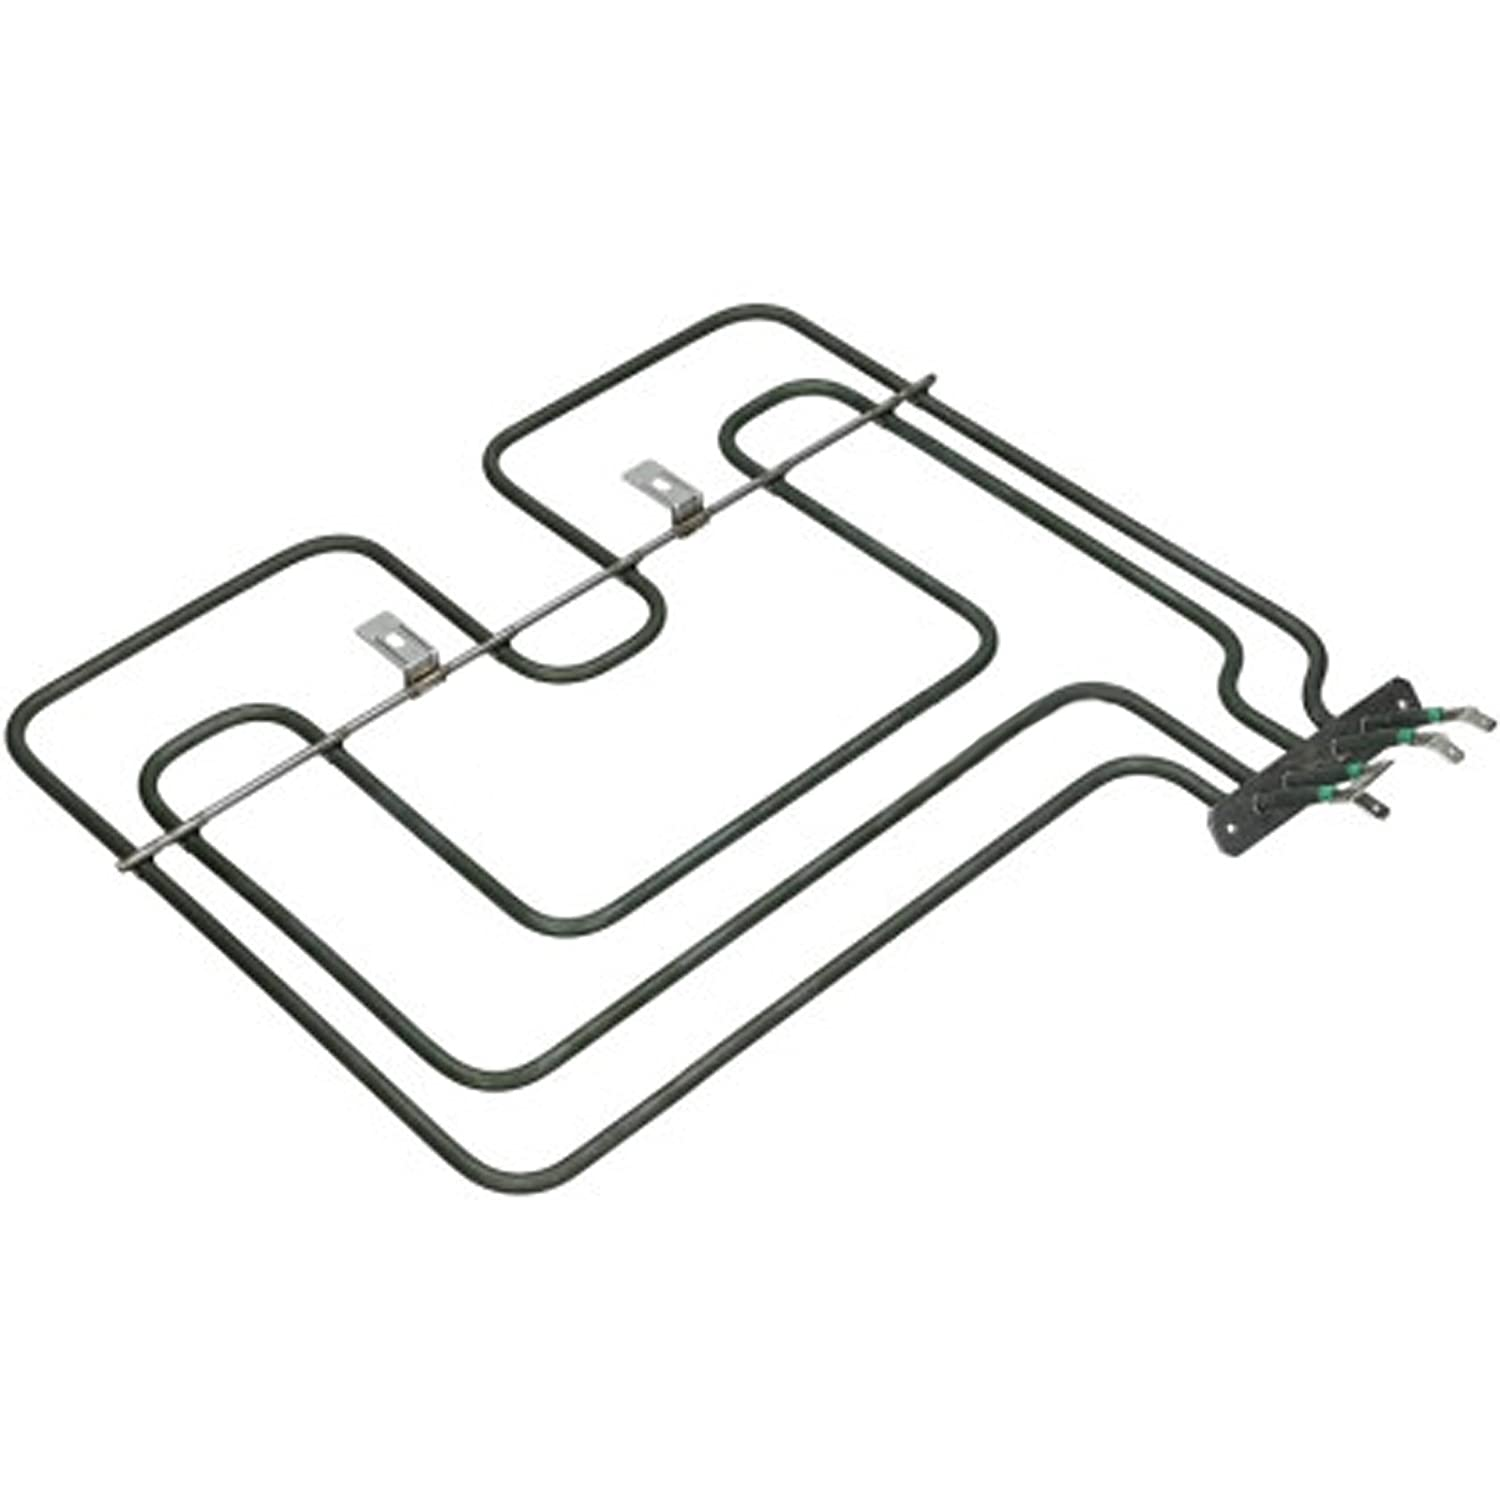 SPARES2GO Top Upper Dual Heating Heater Element for Logik Oven Cooker Grill 2200W